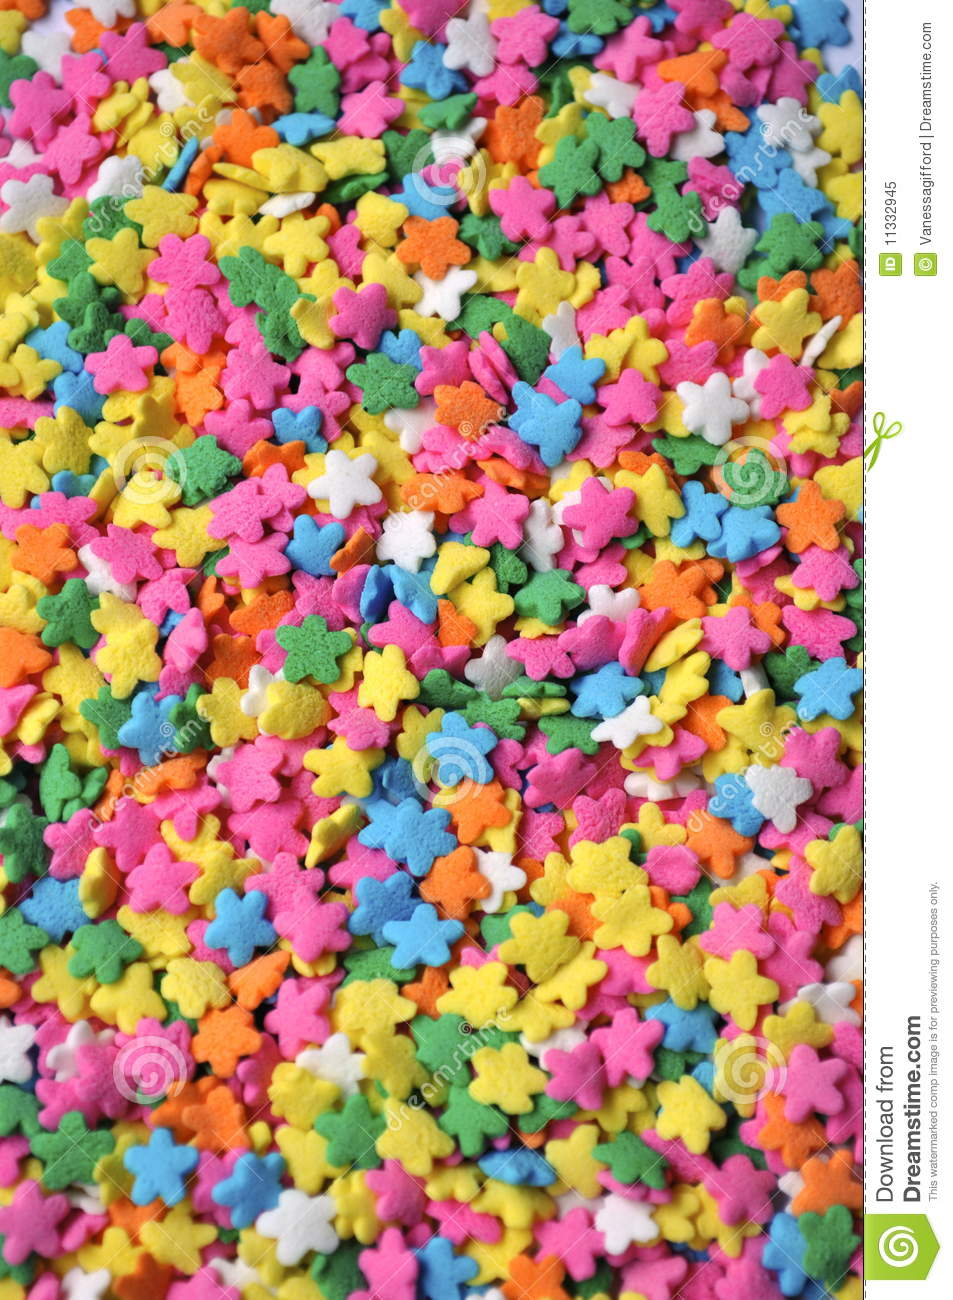 Cute Pastel Wallpaper For Iphone Colorful Star Sprinkles Stock Image Image Of Colorful